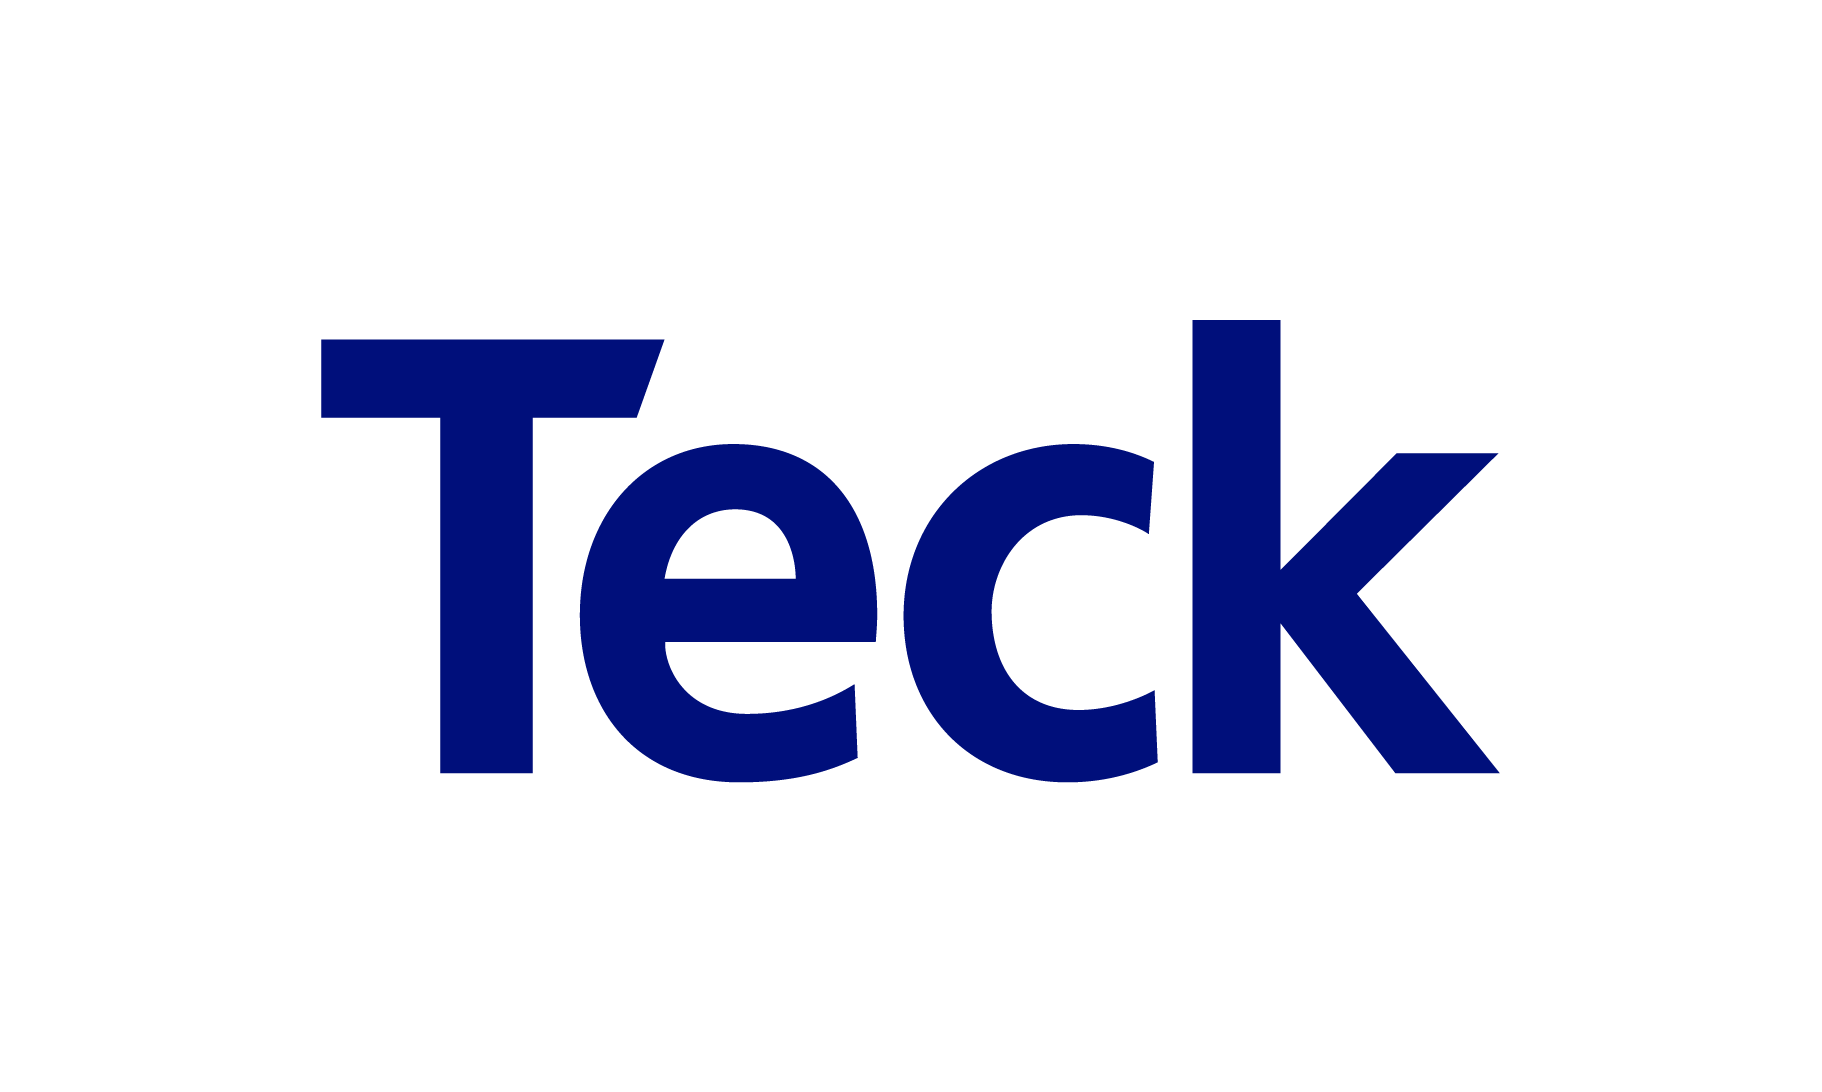 Teck Announces New Collective Agreement at Carmen de Andacollo Operations